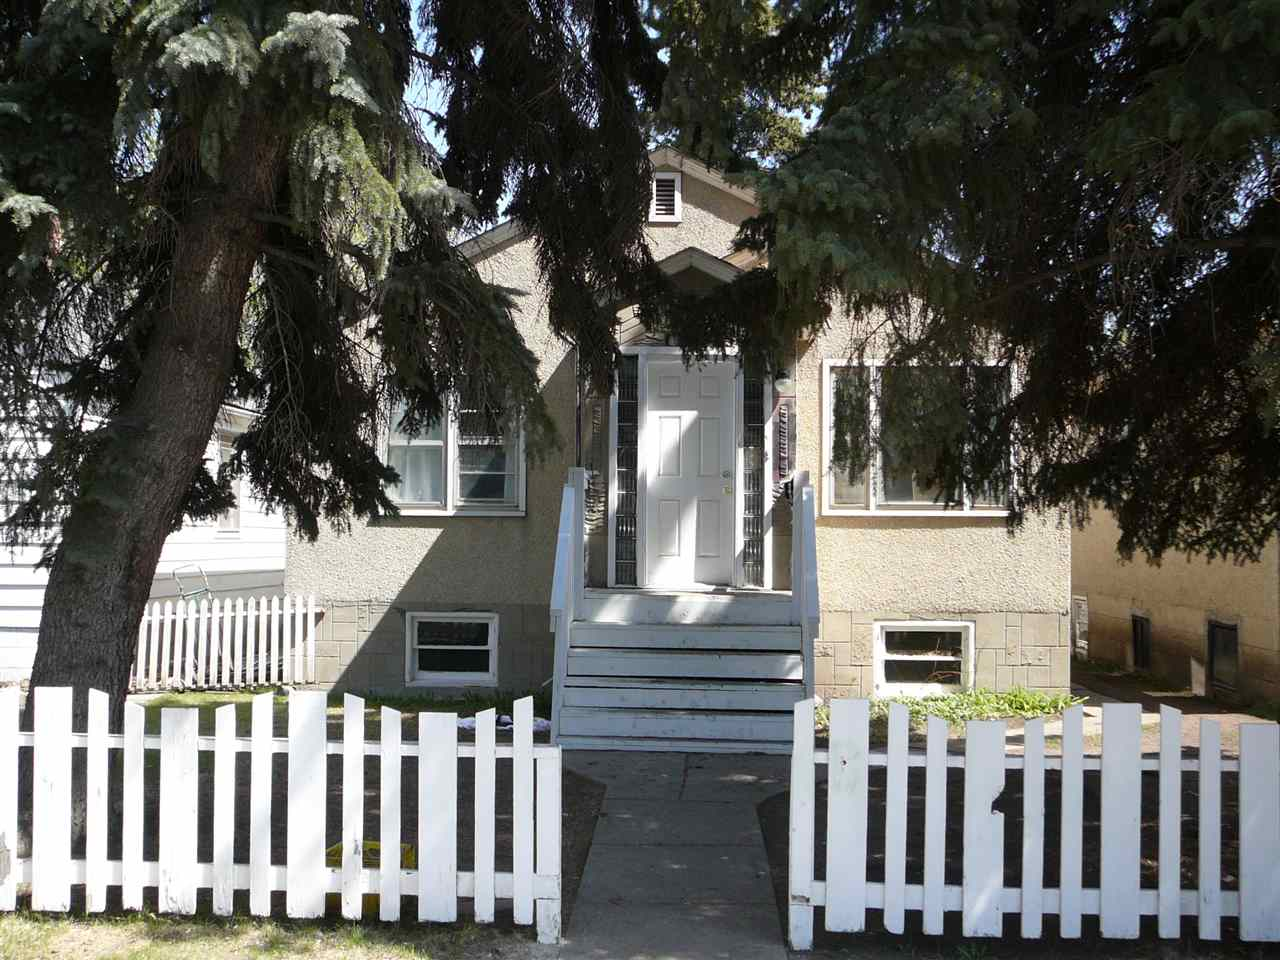 Investors or budget minded buyers wanted! This quaint house is located close to downtown and Northlands Park. Excellent shopping and transportation are in easy walking distance. This is one of 4 properties in a row which would home a nice multi-family development. Each lot is 33'x120', this site is 132'X120' or 15,840 s feet. These properties must be sold!